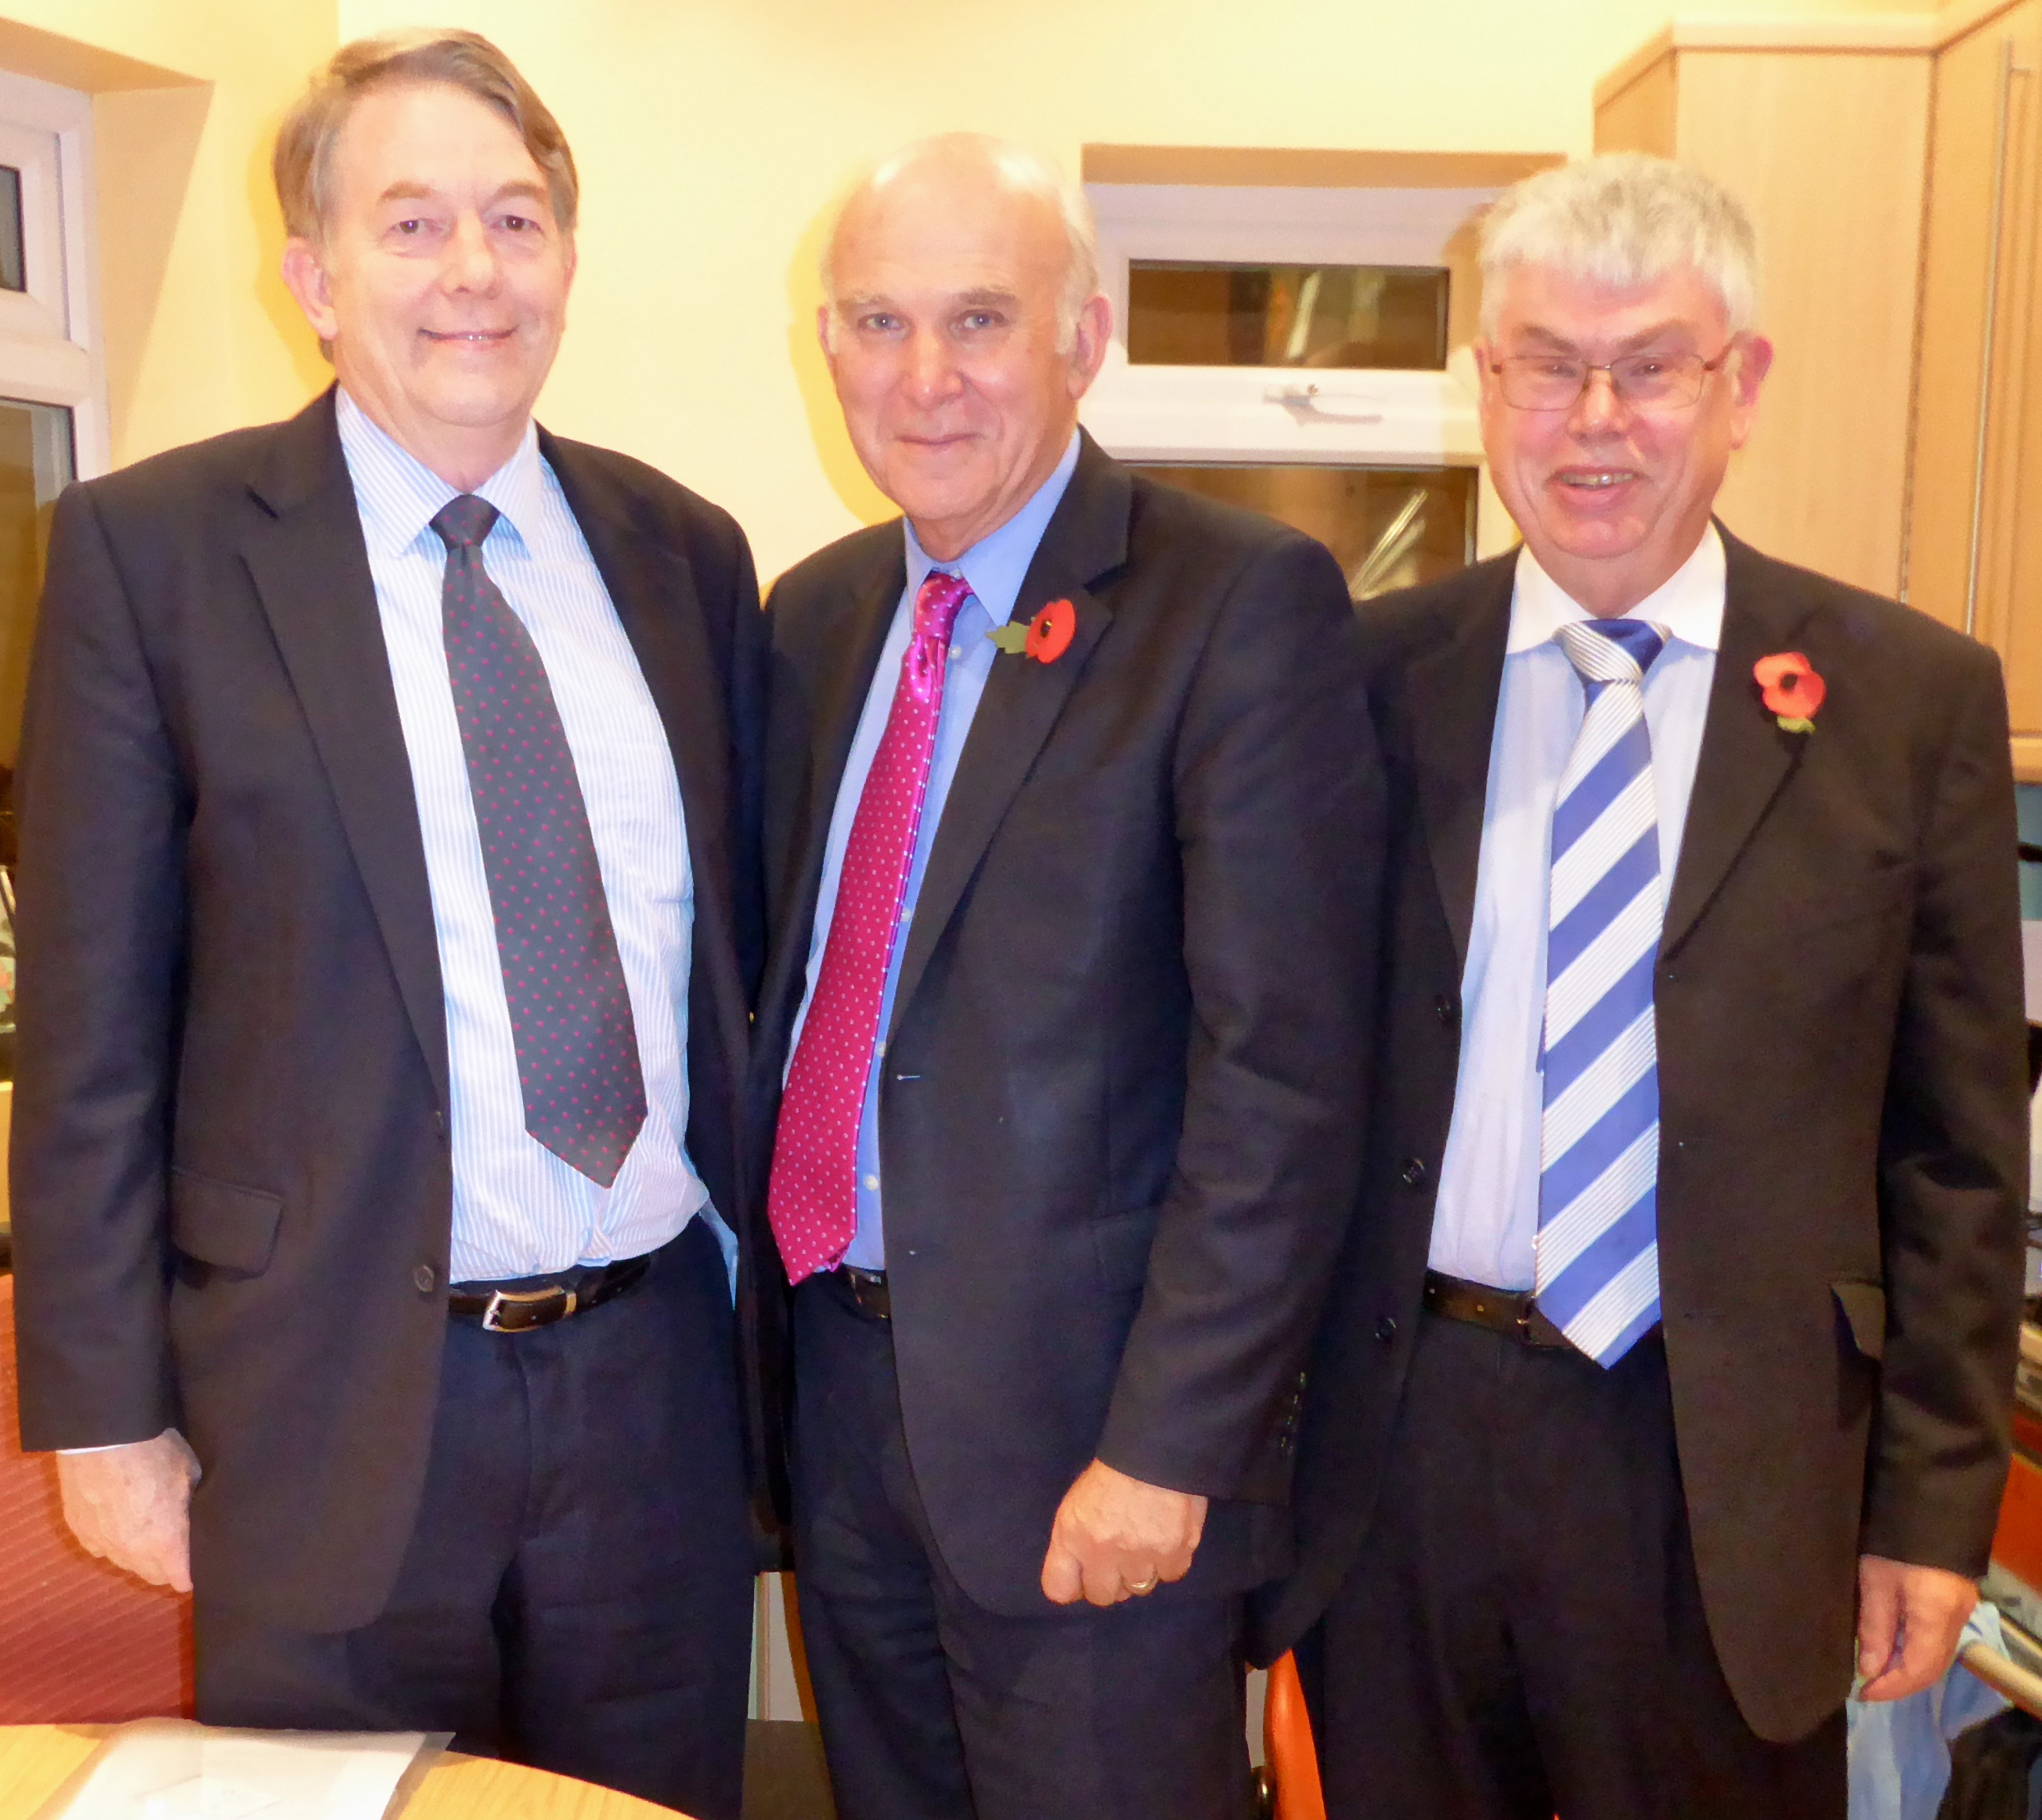 CE and OB with Dr Vince Cable